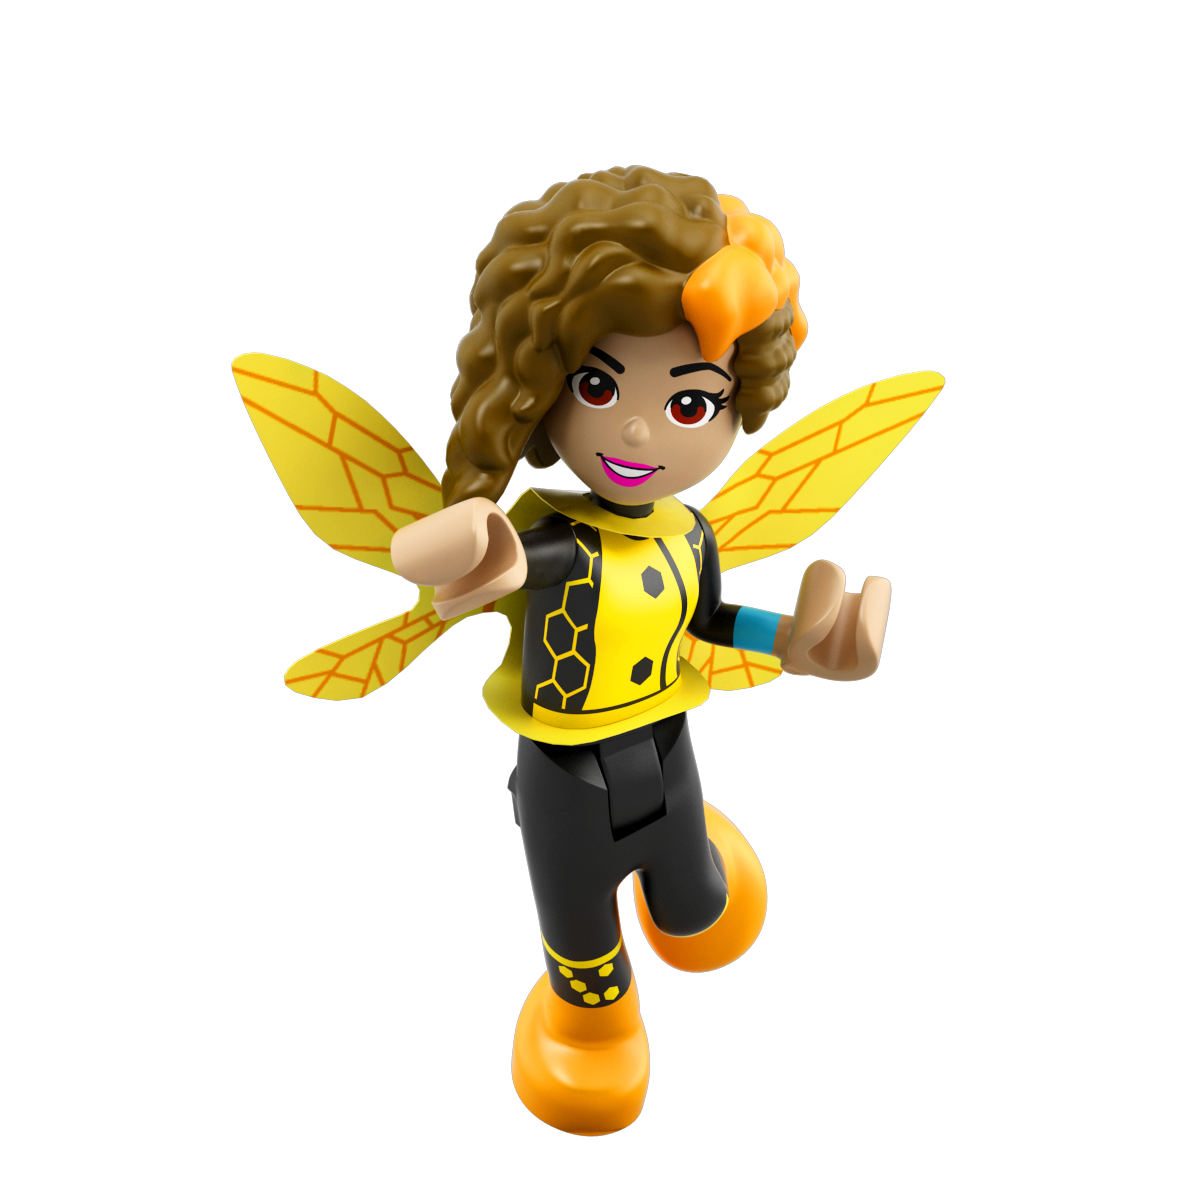 Lego girl png. Bumblebee dc super hero